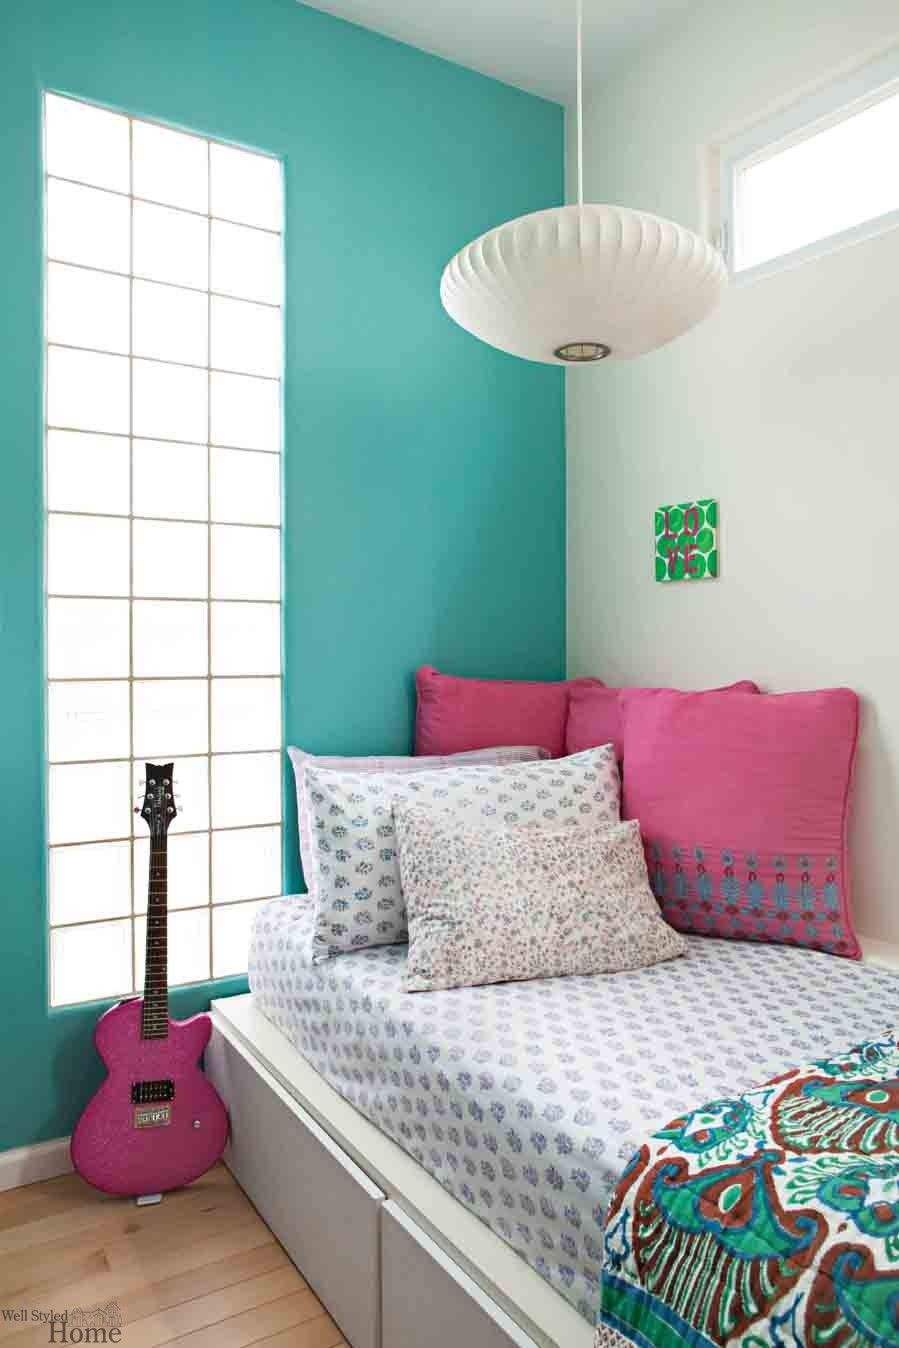 Girly tips for a teen girls bedroom decor ideas stuff for the kiddo pinterest girly teen - Bedroom wall decoration ideas for teens ...